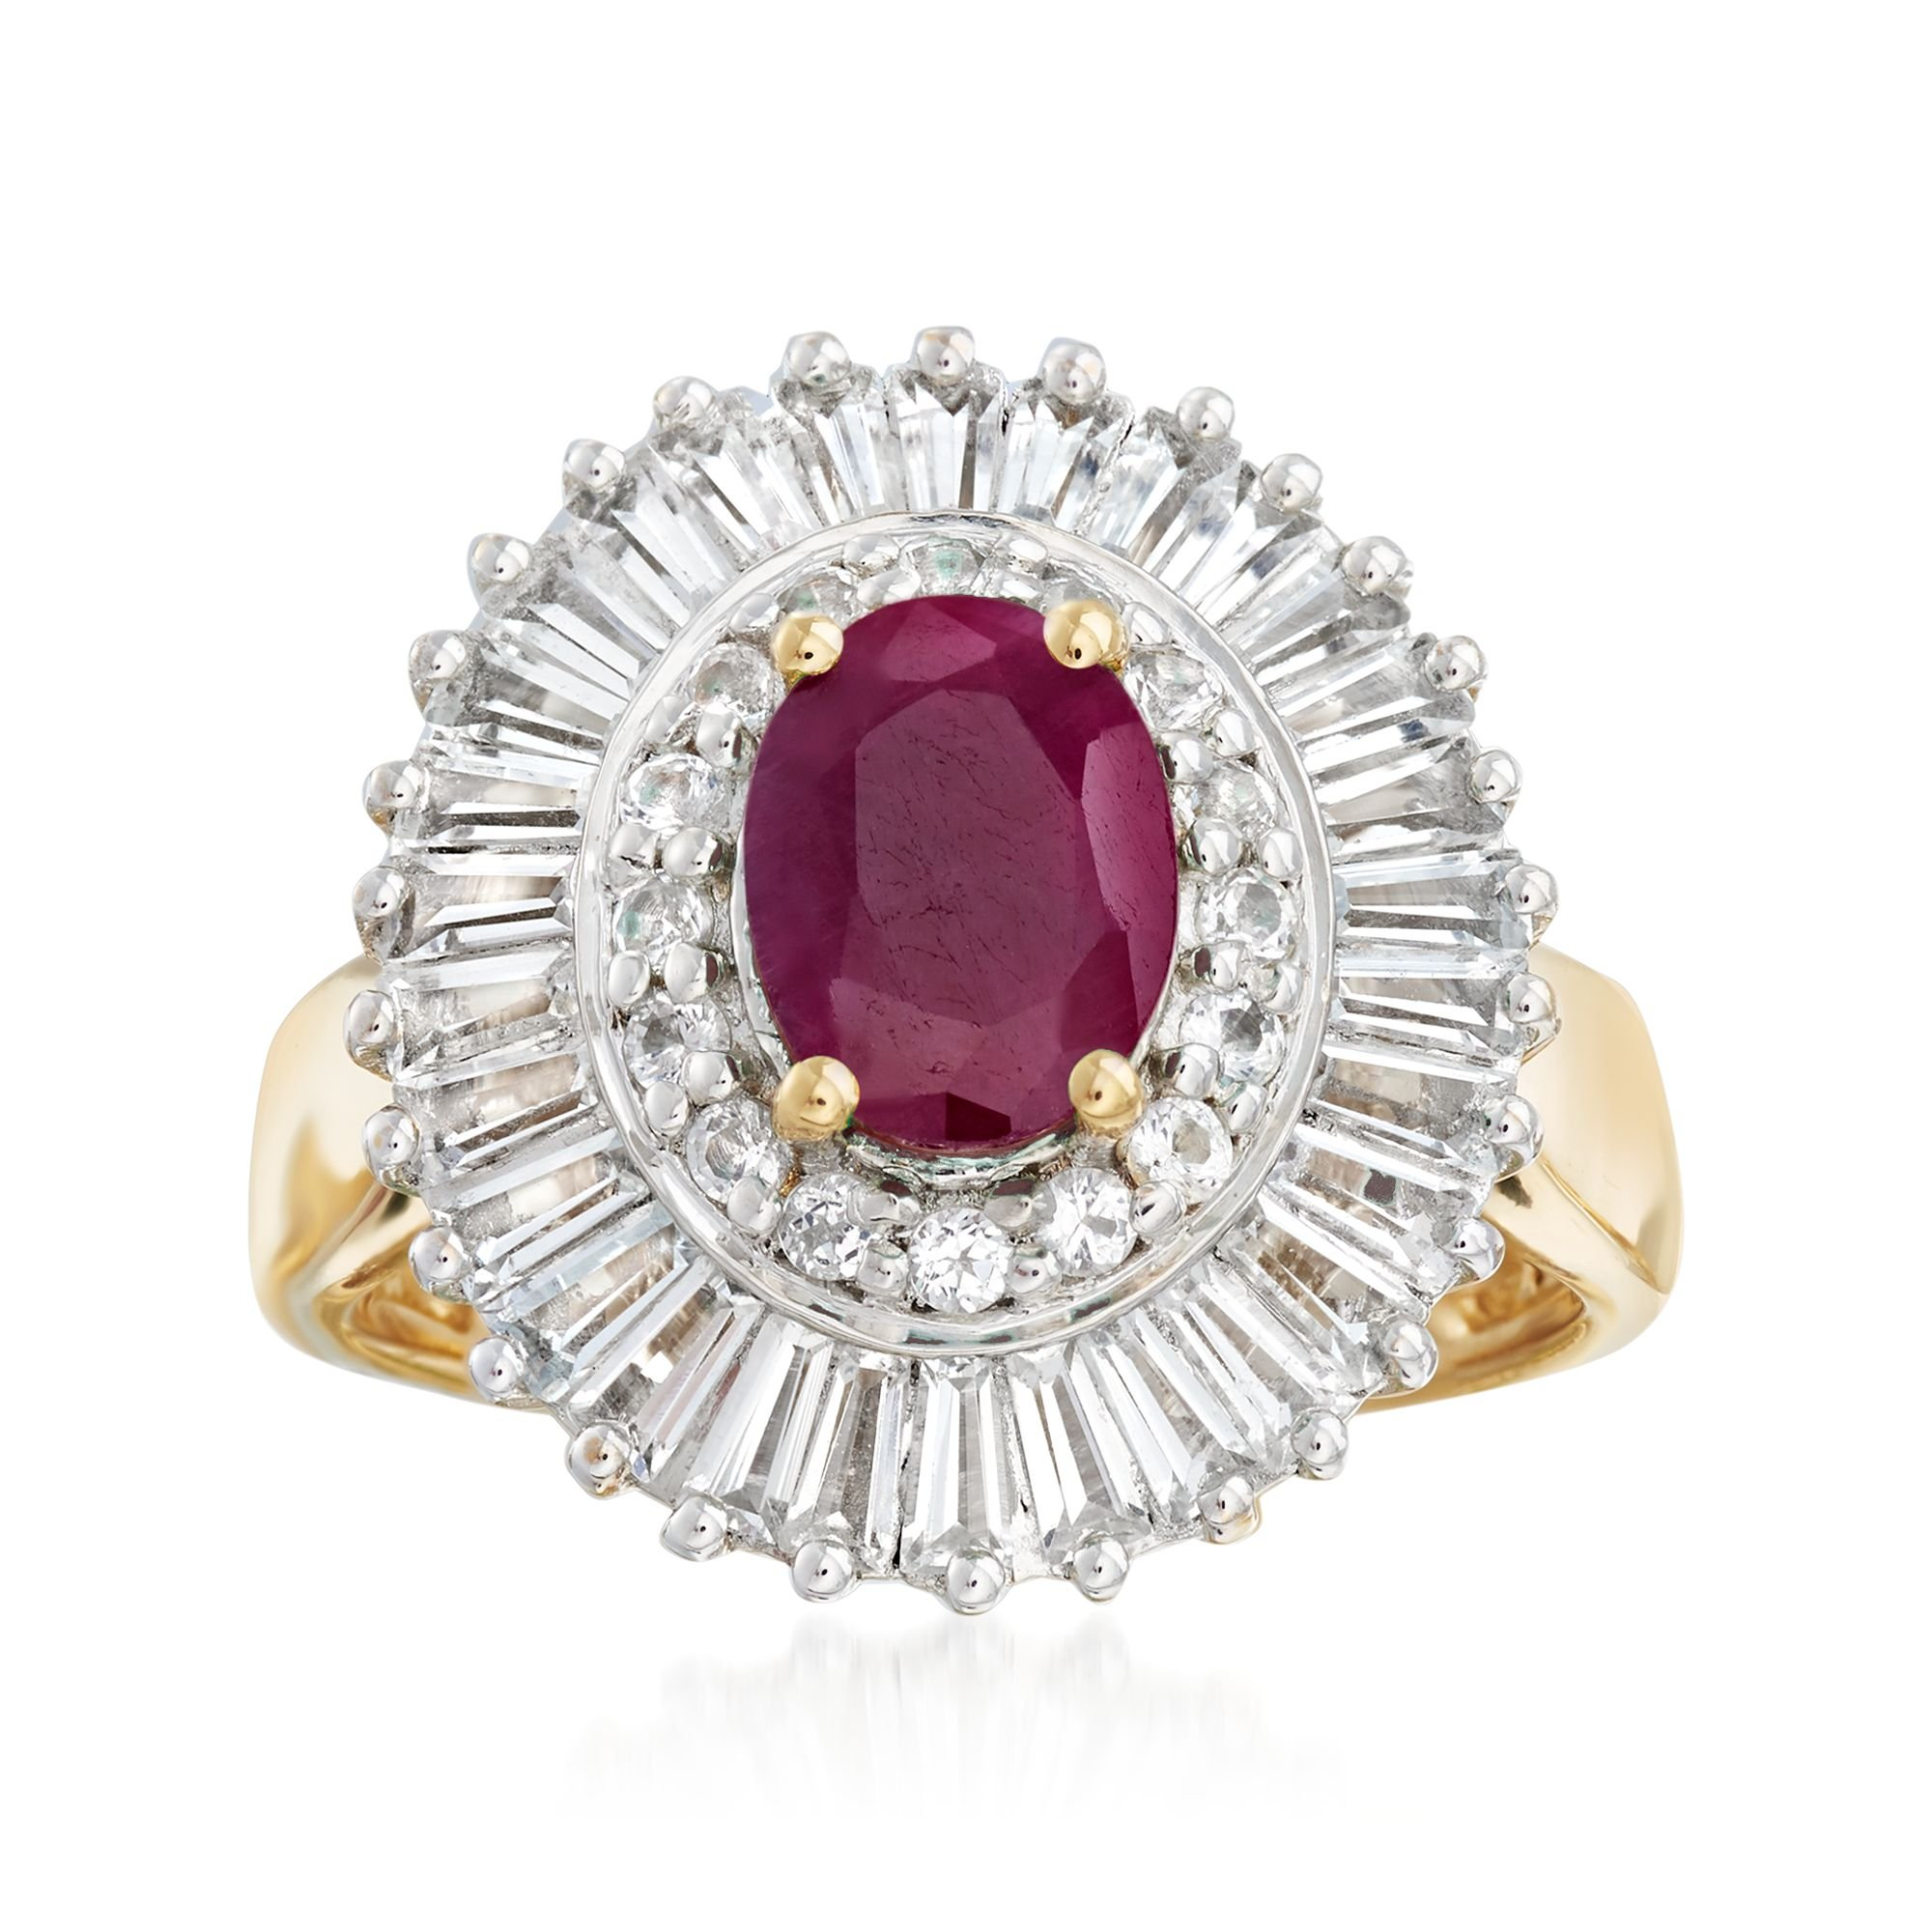 Ross-Simons 1.50 Carat Ruby and 2.00 ct. t.w. White Topaz Ring in 18kt Gold Over Sterling